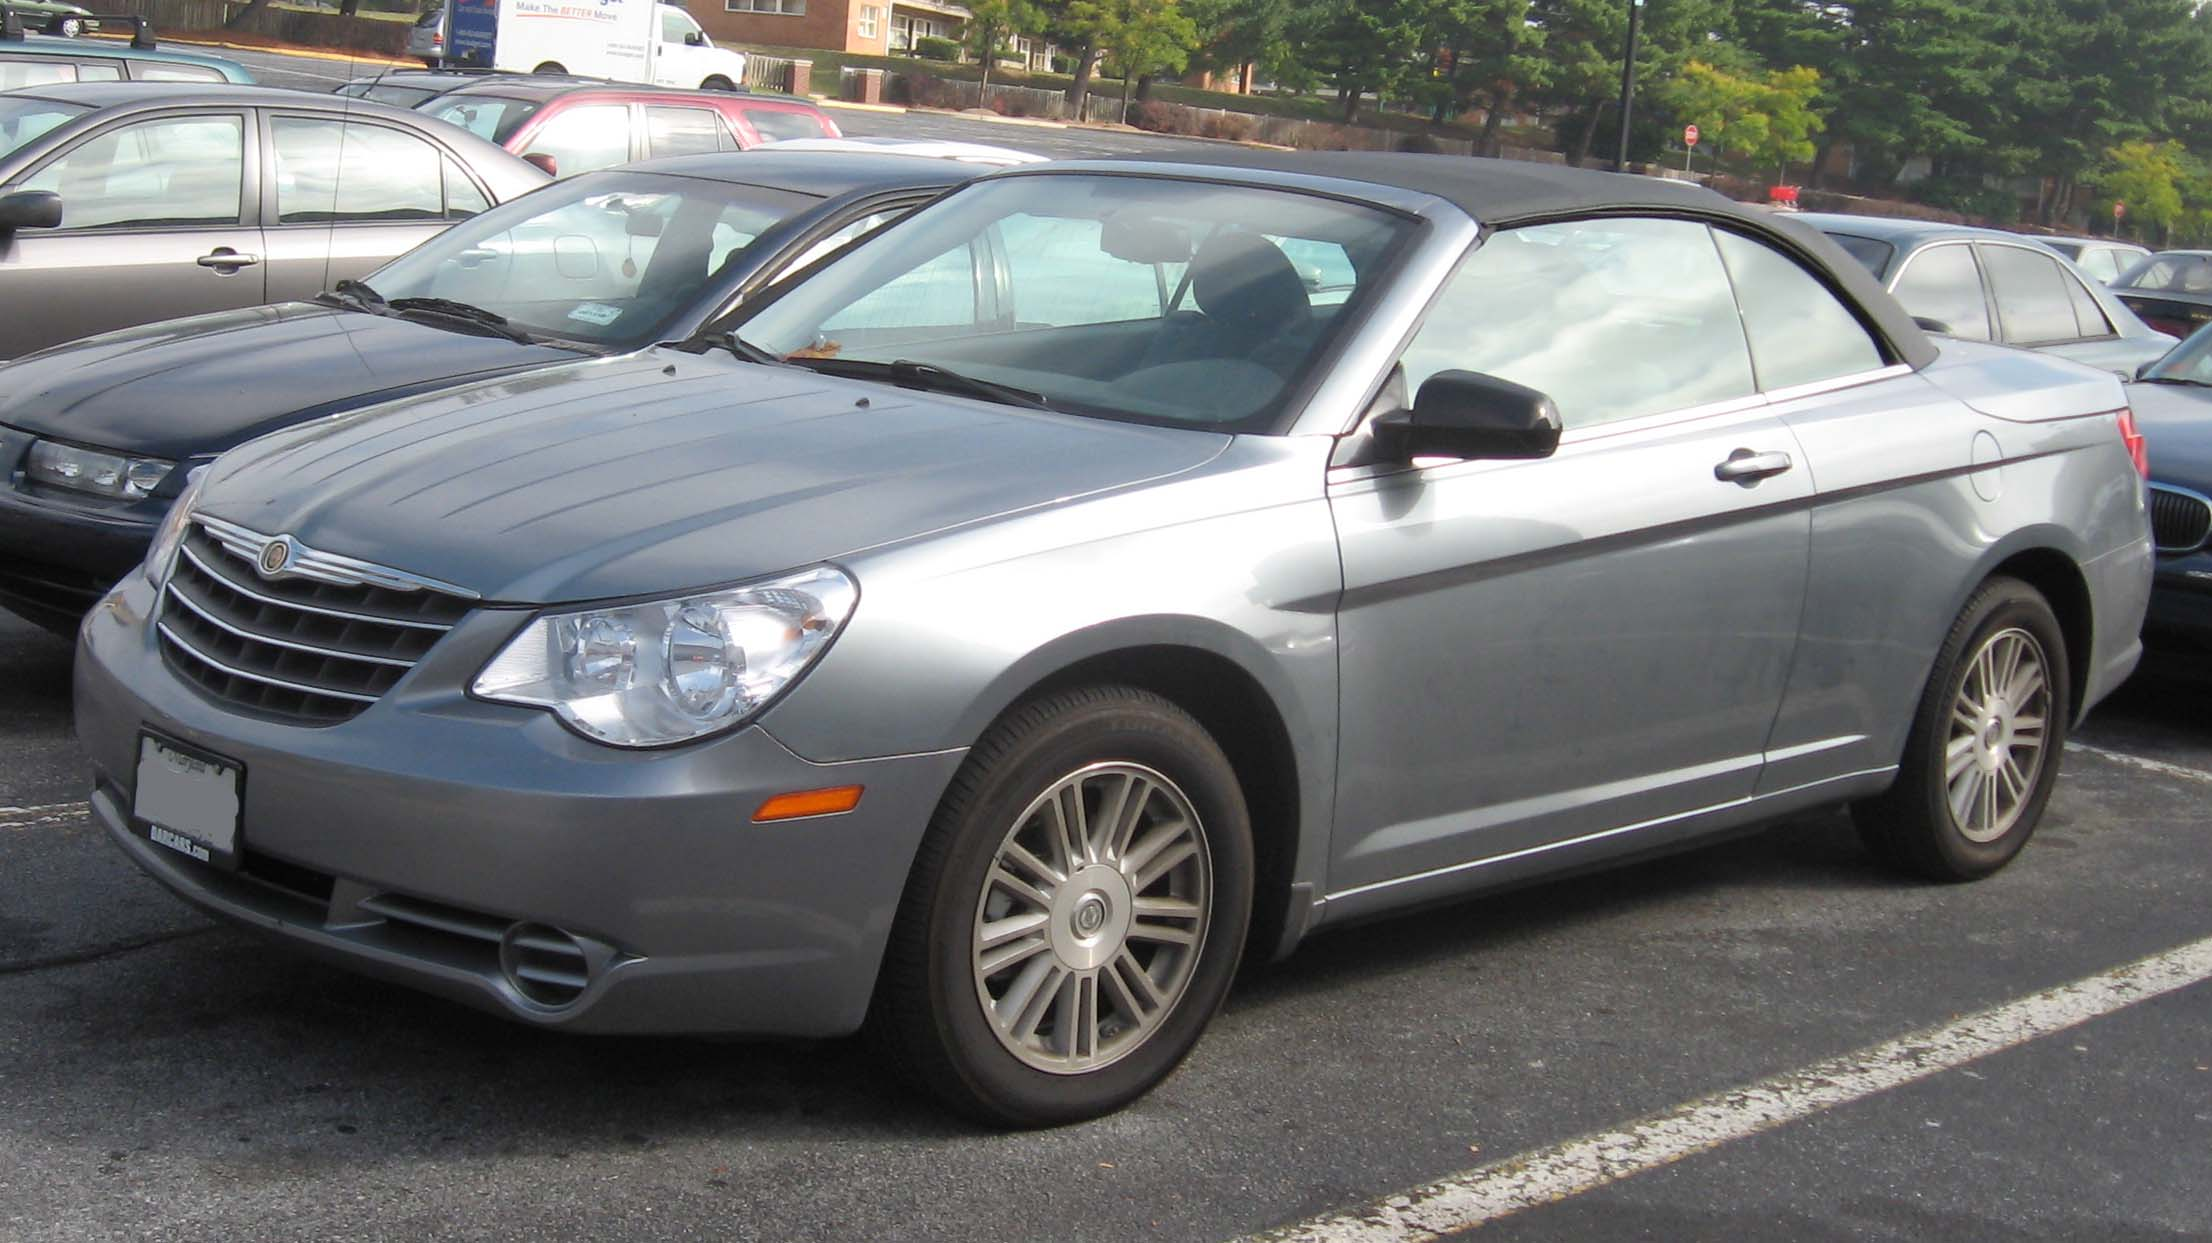 file 2008 chrysler sebring wikimedia commons. Black Bedroom Furniture Sets. Home Design Ideas